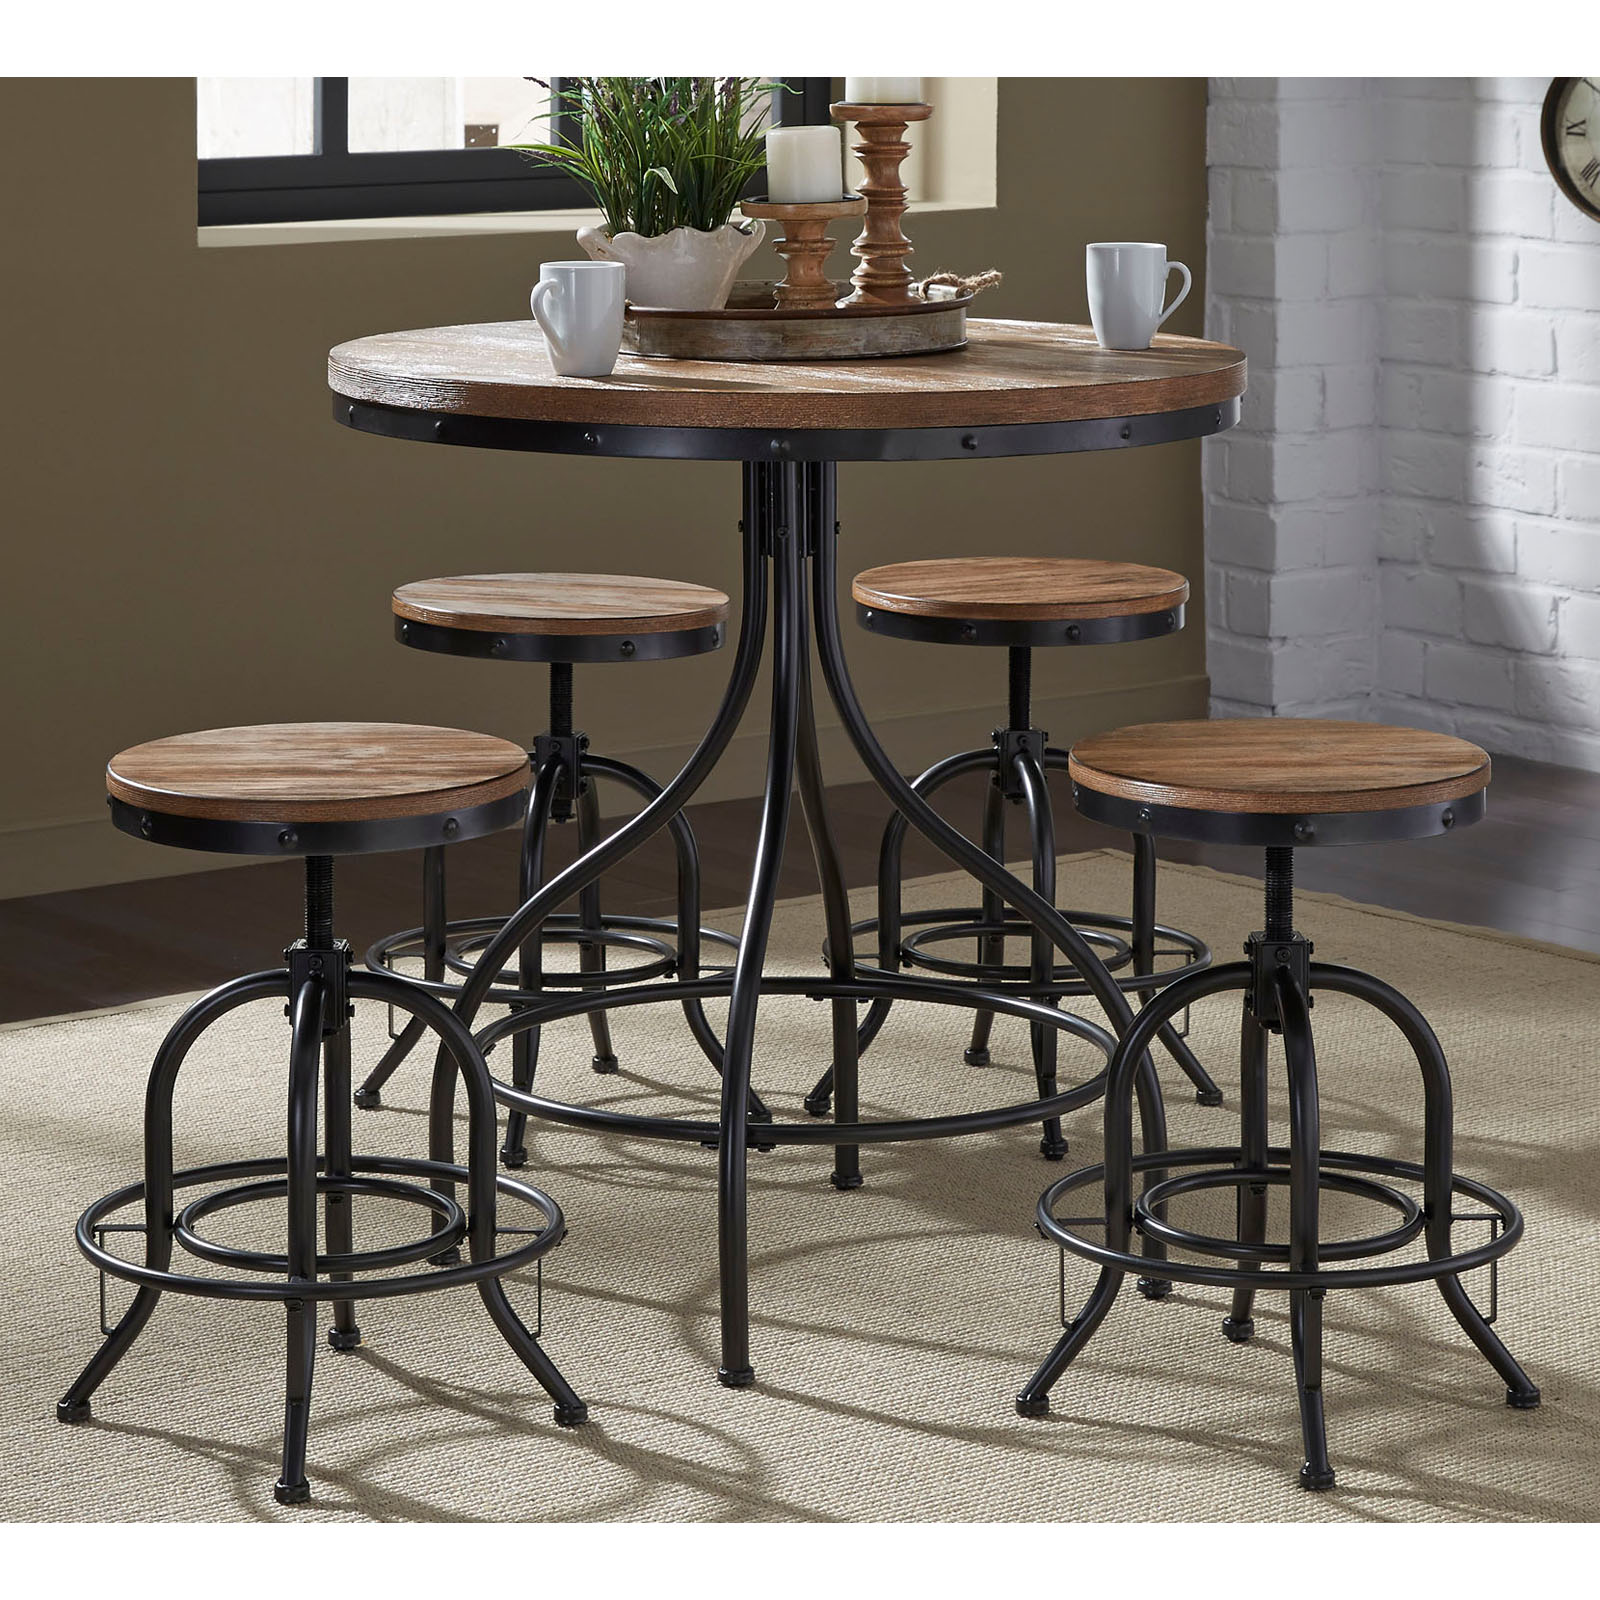 Liberty Furniture Industries Vintage Dining Series 5 Piece Pub Table Set & 5 Piece Pub Table Sets | Hayneedle